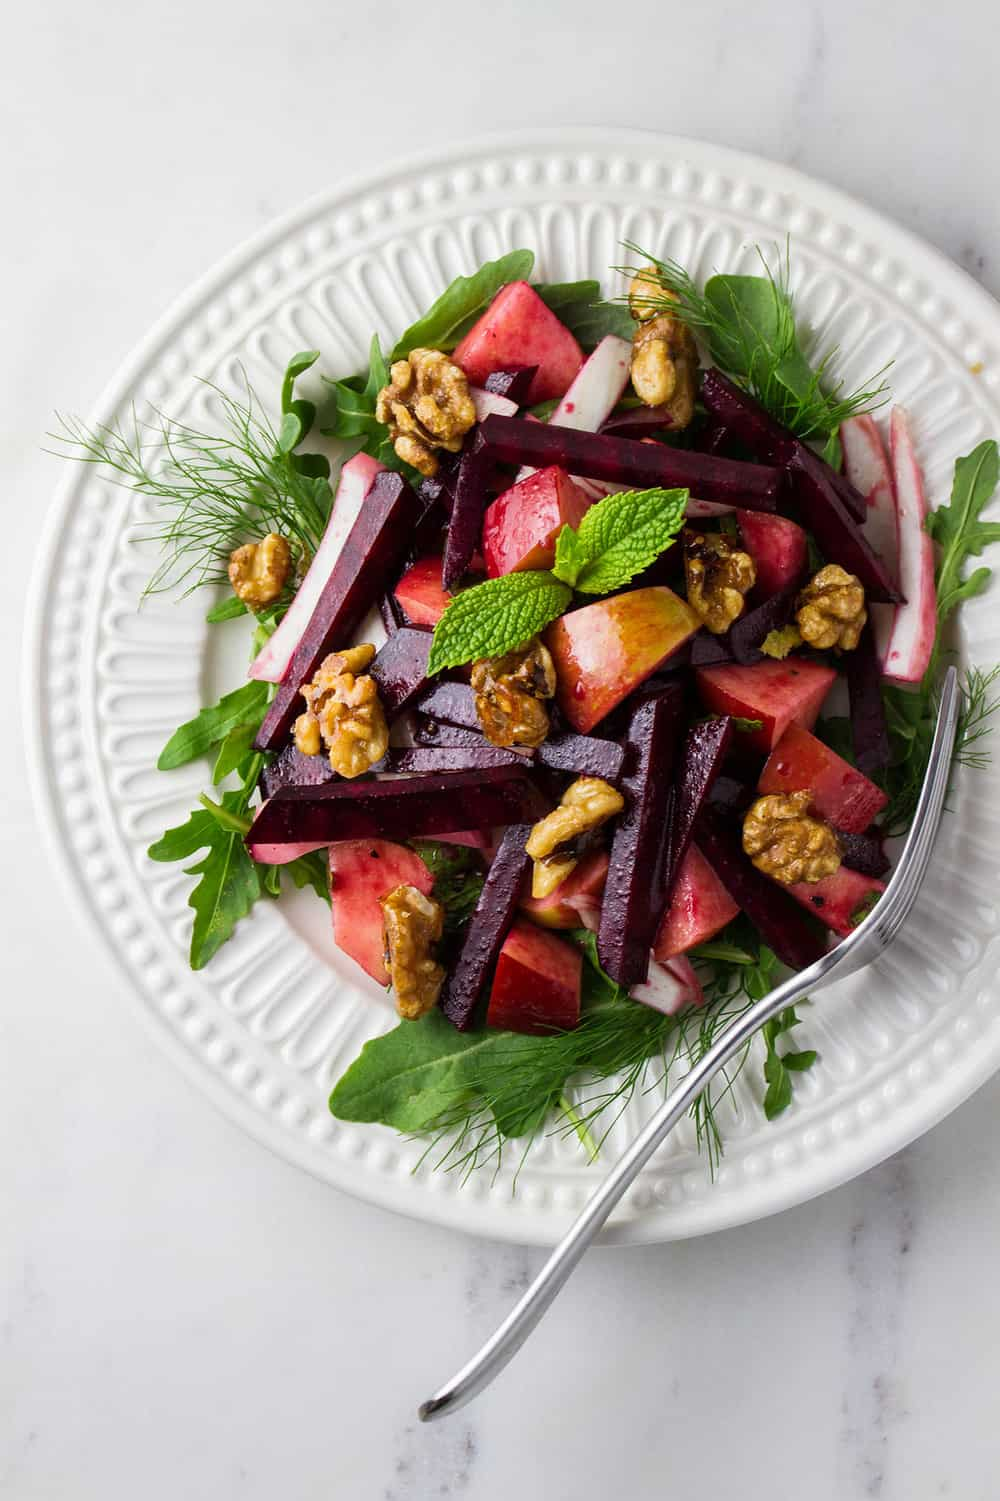 APPLE, BEET & FENNEL SALAD + BALSAMIC MAPLE-DIJON VINAIGRETTE